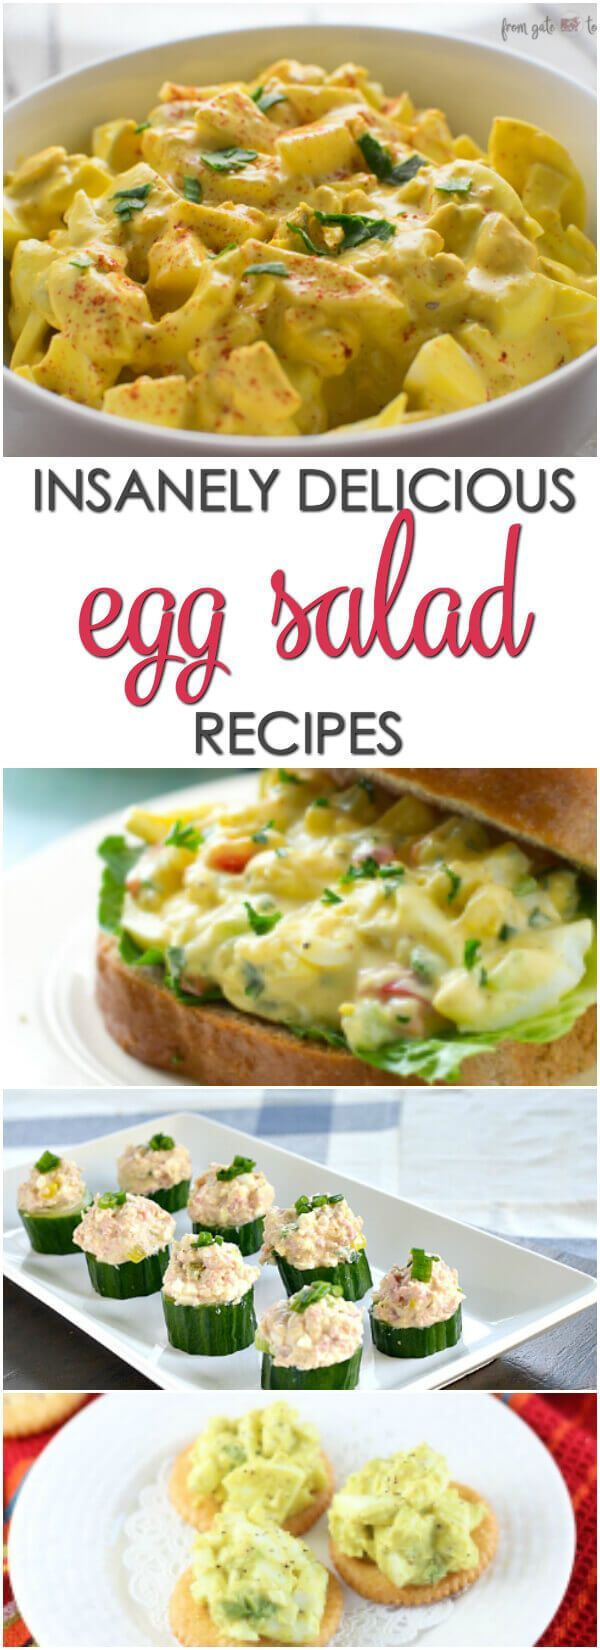 The 25 best old fashioned egg salad sandwich recipe ideas on 12 insanely delicious egg salad recipes including my favorite old fashioned egg salad recipe forumfinder Image collections